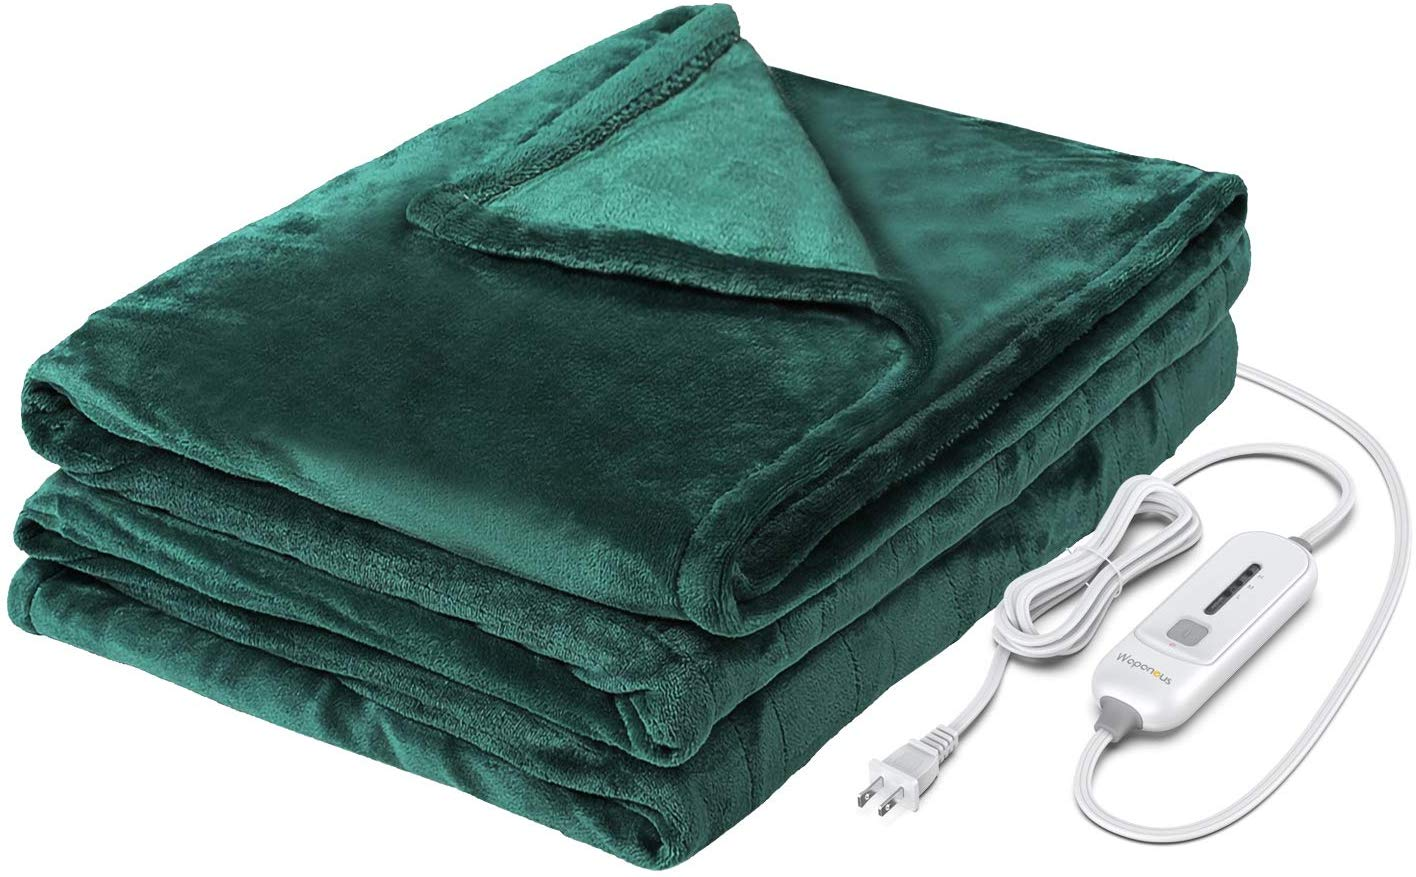 WAPANEUS Electric Heated Blanket with 3 Heating Levels and Auto Shut Off,Soft Plush Heated Throw Blanket with Fast-Heating and Machine Washable Fabrics For Couch or Bed Use